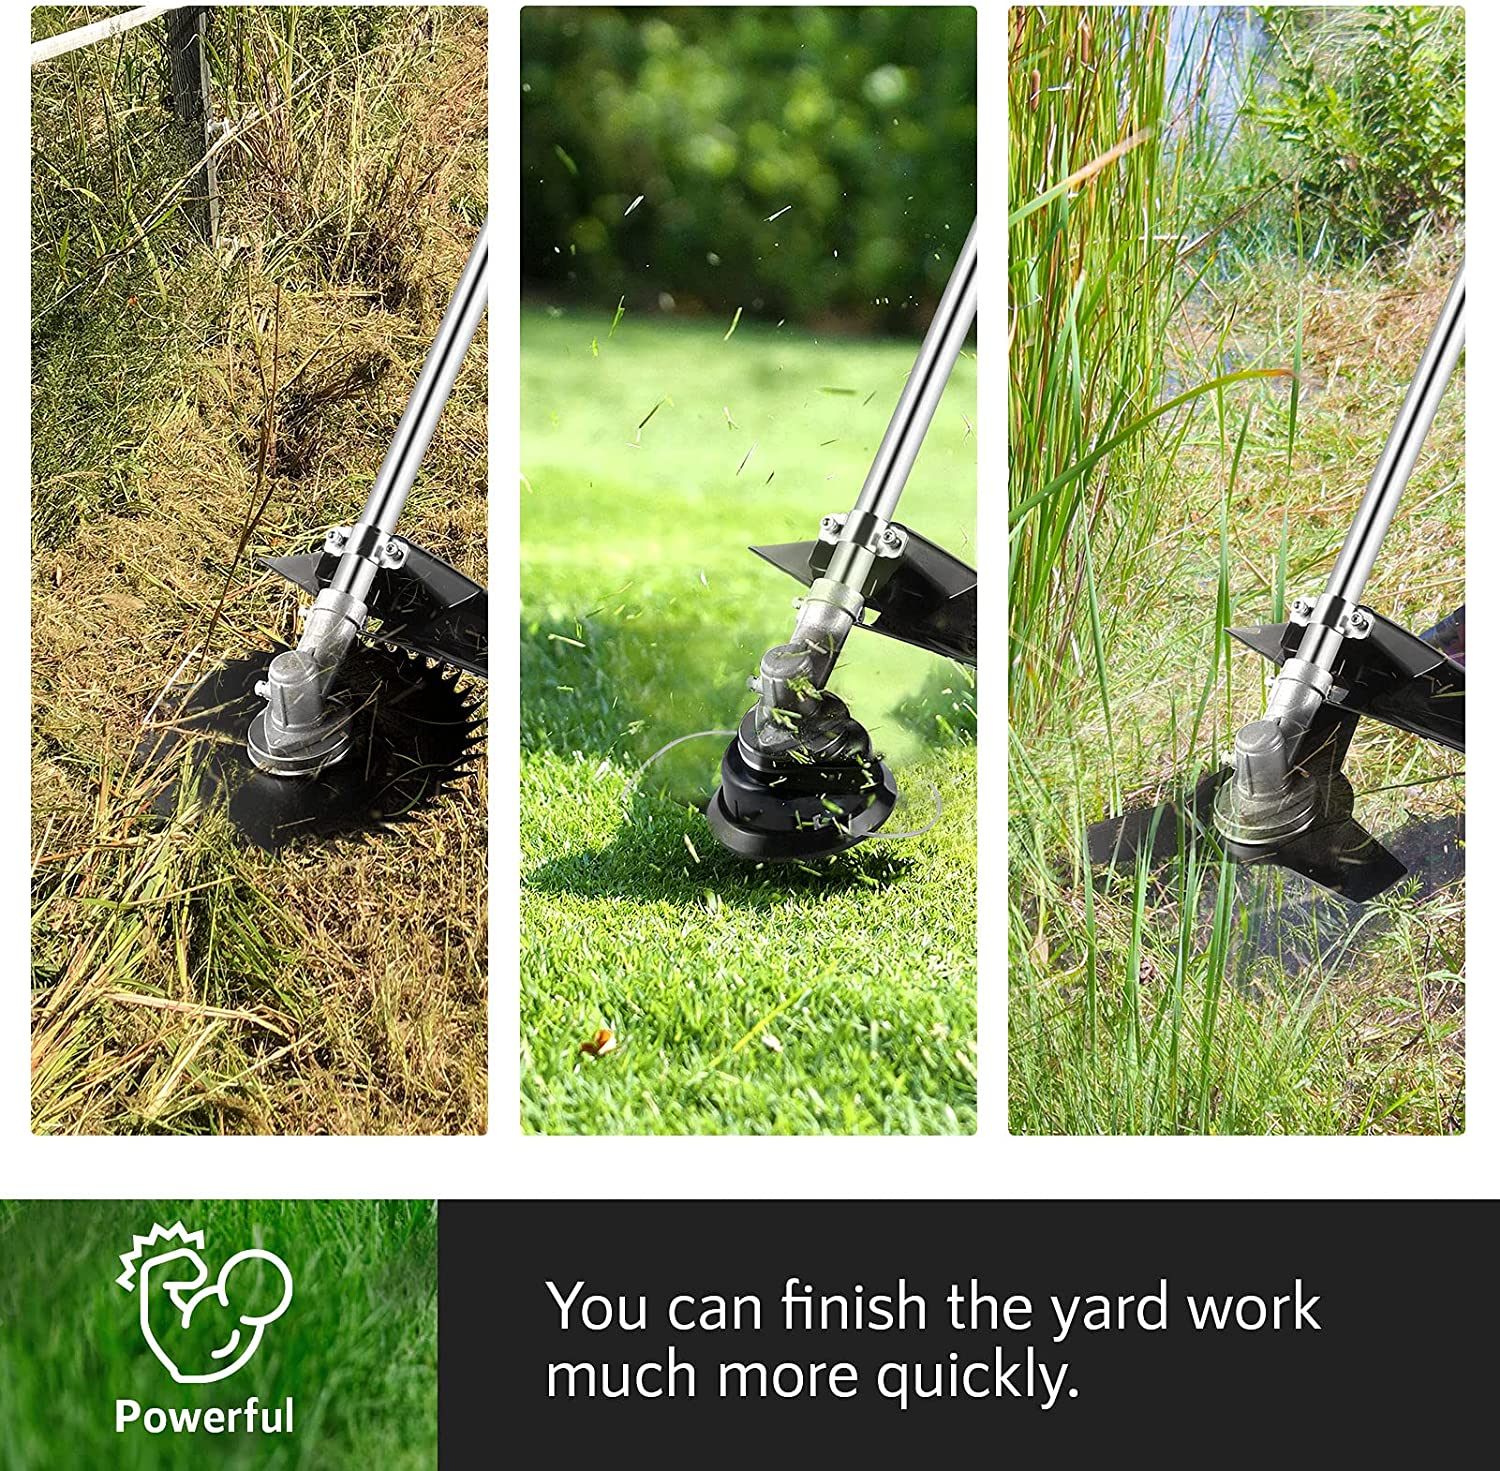 Mowers & Outdoor Power Tools 2-Cycle 3-in-1 Gas String Trimmer and ...